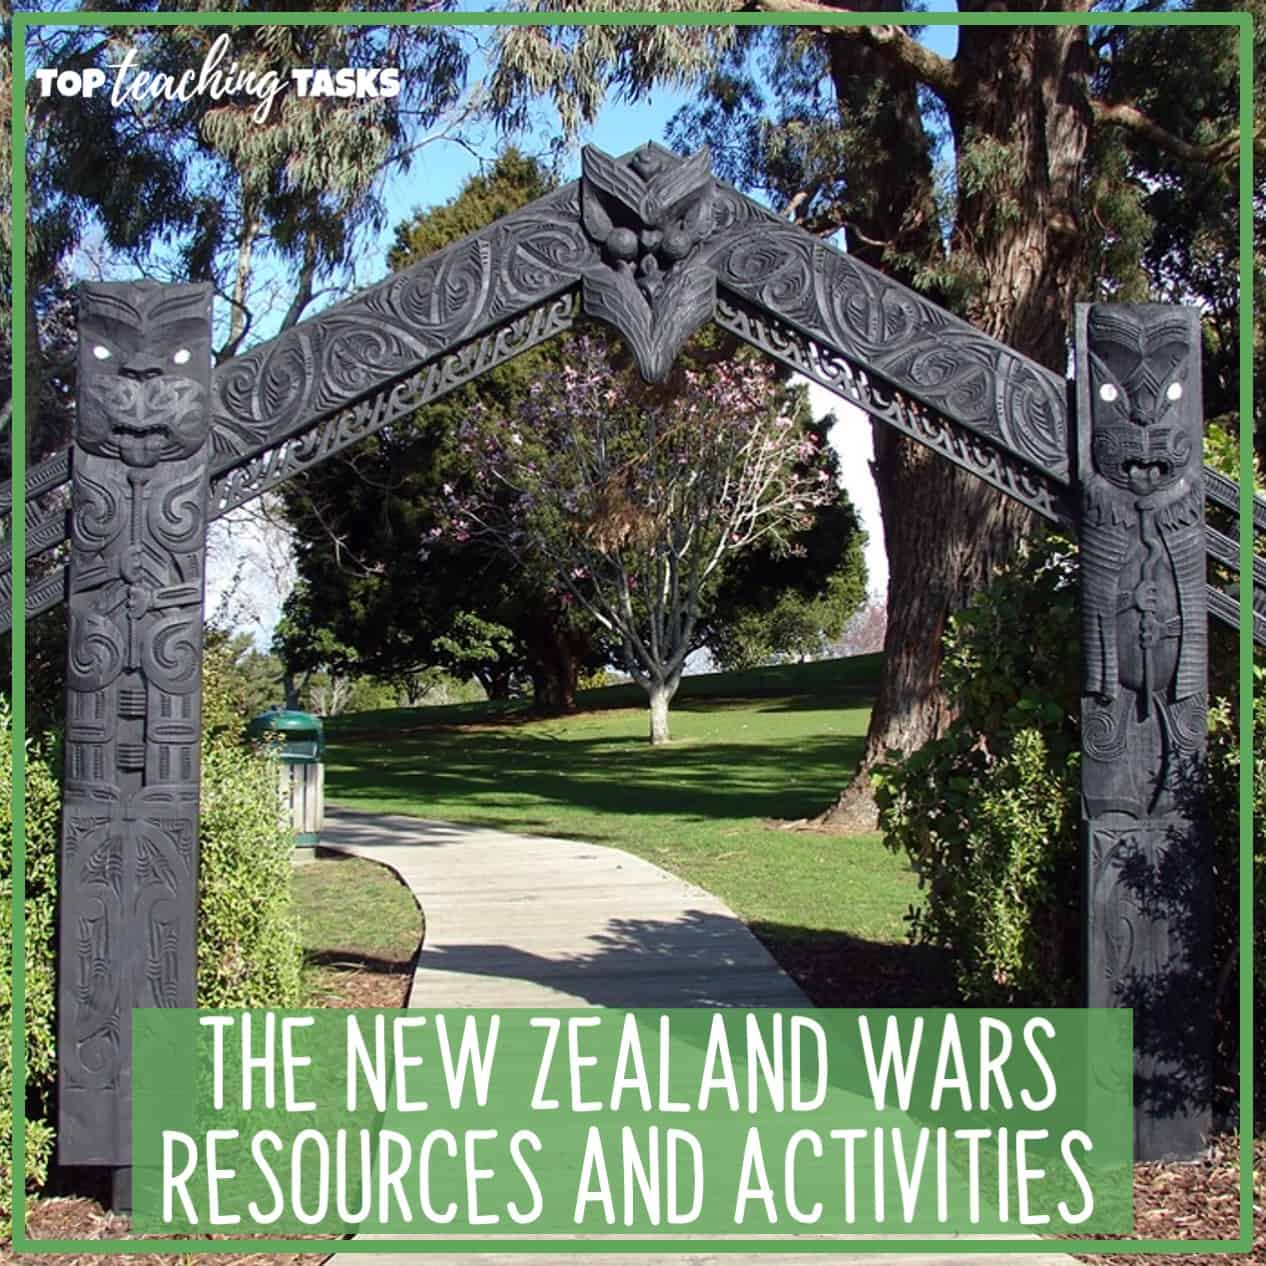 The New Zealand Wars Resources and Activities. This blog post highlights a range of New Zealand Wars Teaching Resources and Activities to help you to introduce and explore this part of New Zealand's history with your students.